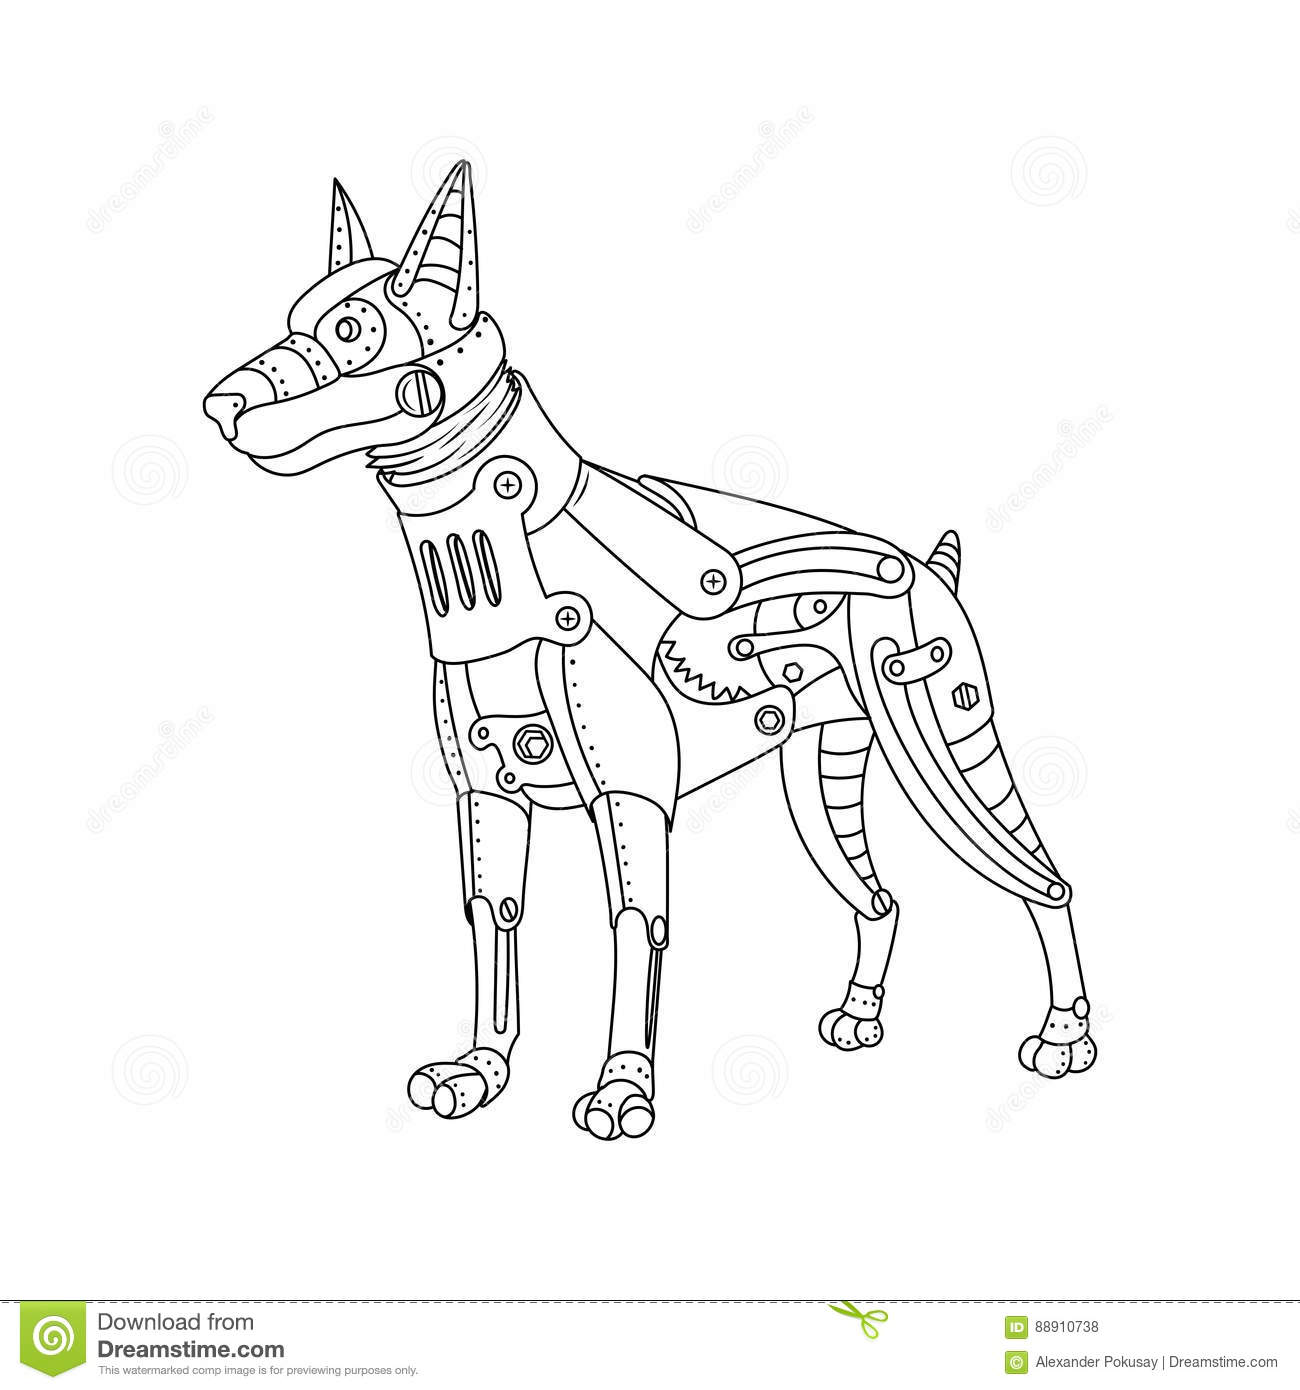 Steam Punk Style Doberman Dog Coloring Book Vector Stock Vector ...